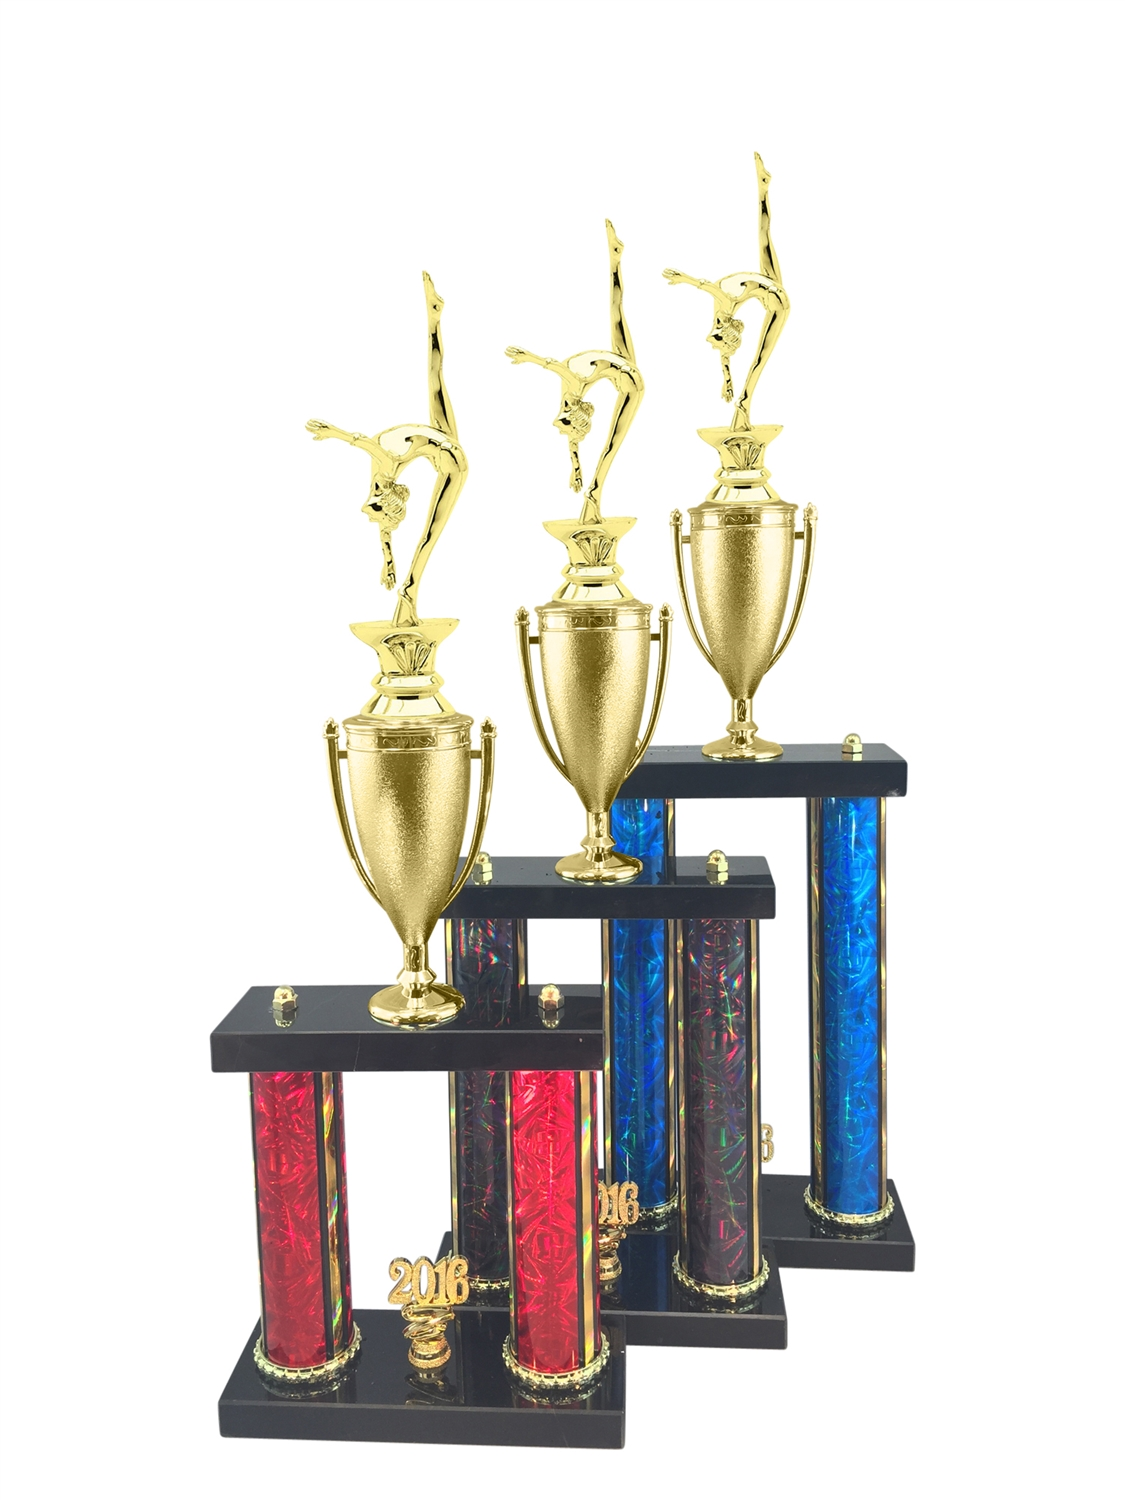 2 Post Female Gymnastics Trophy in 11 Color & 3 Size Options